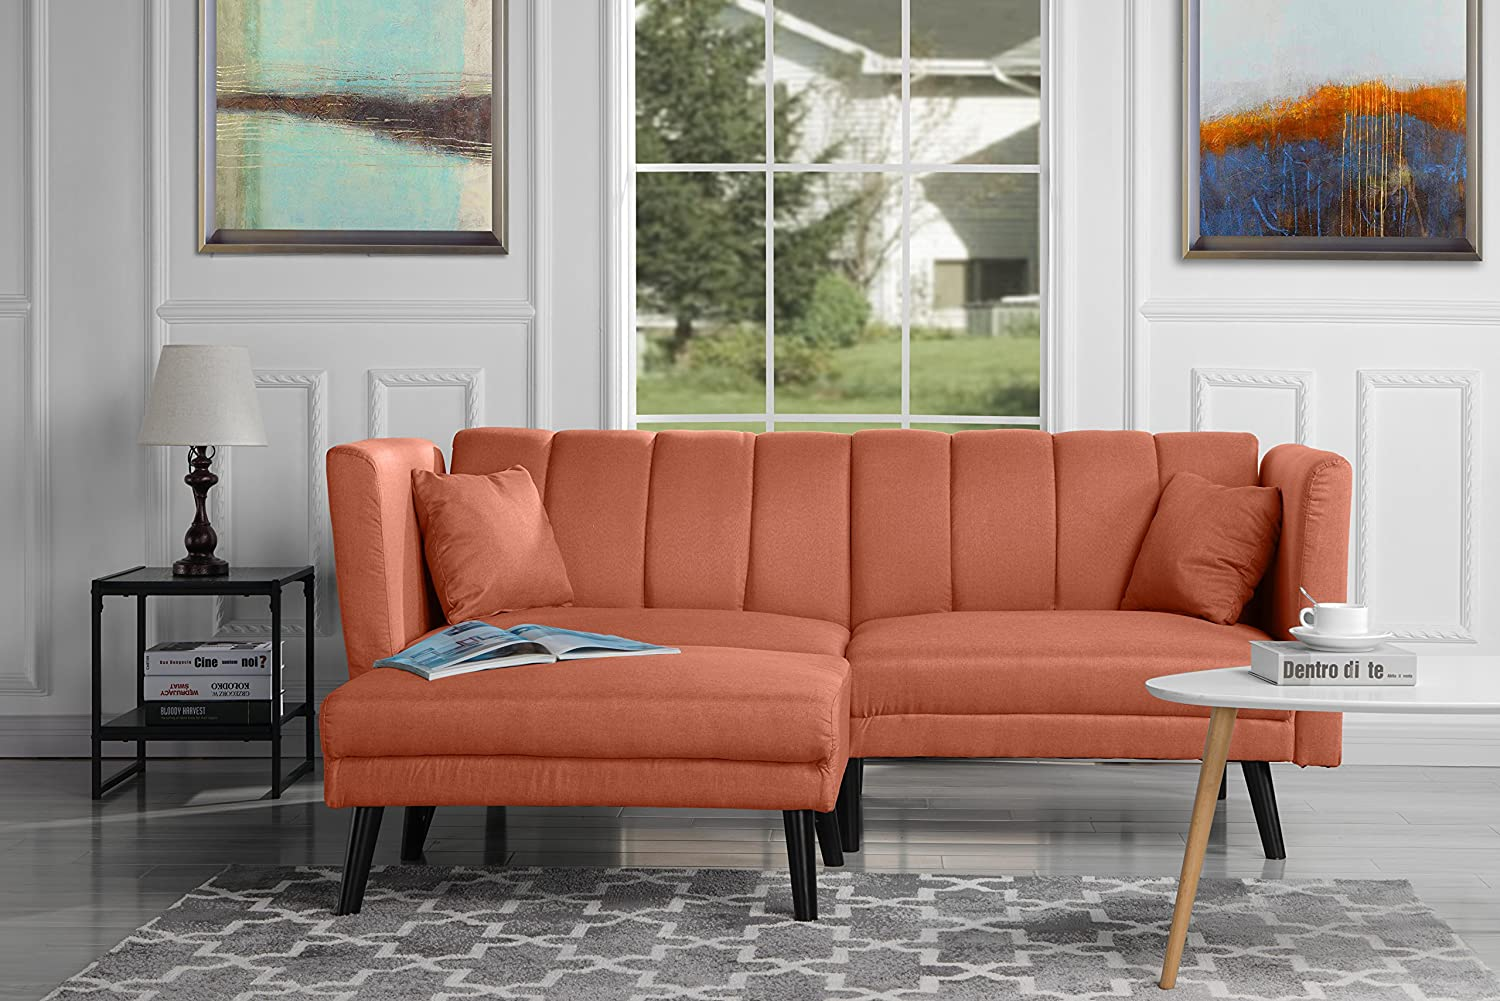 Mid Century Modern Linen Fabric Futon Sofa Bed, Living Room Sleeper Couch (Orange) by Divano Roma Furniture